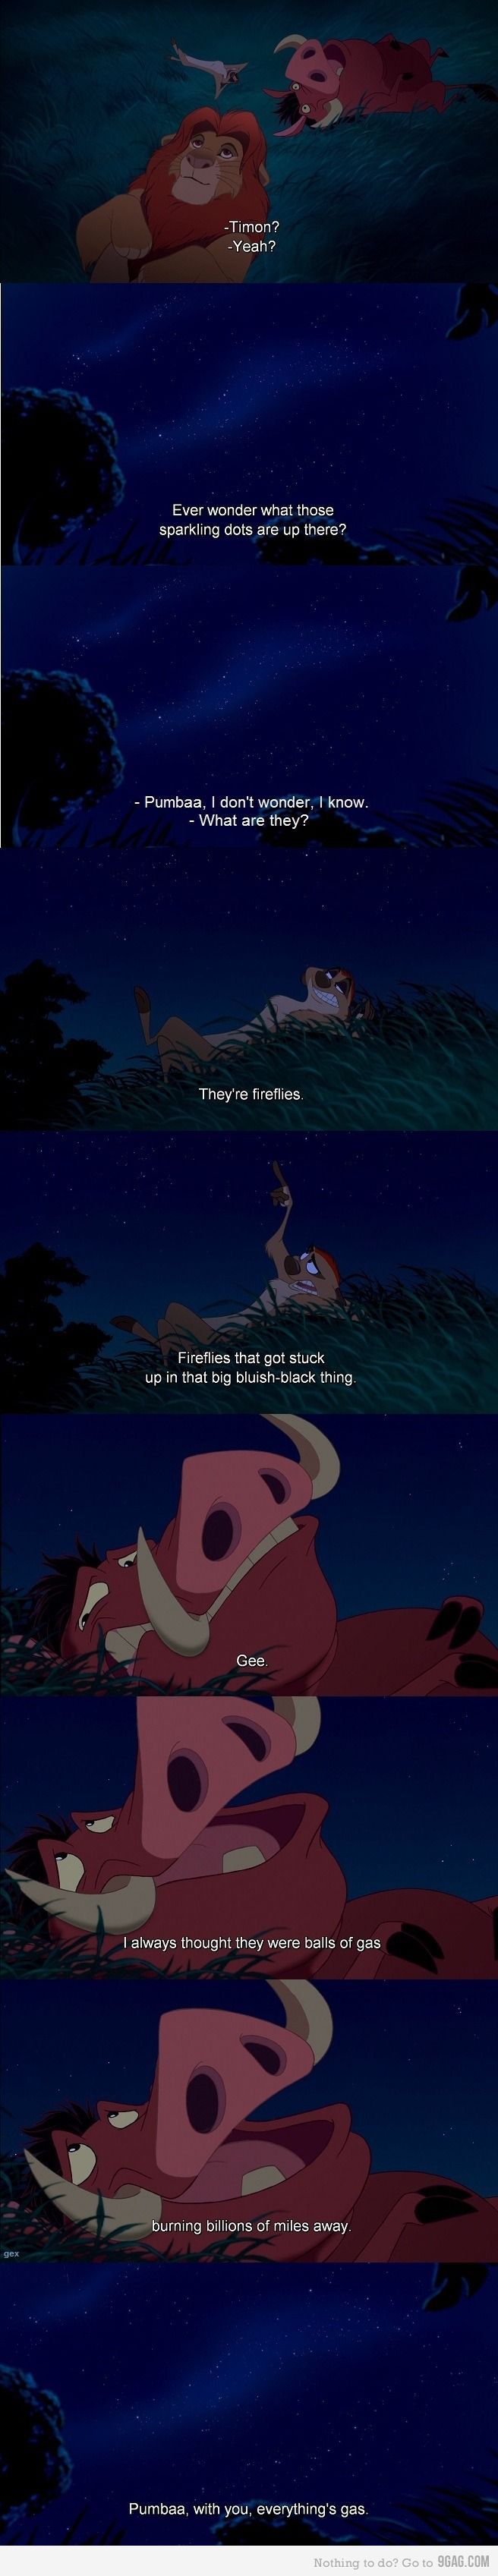 Lion king :) I just quoted this scene the other day! haha